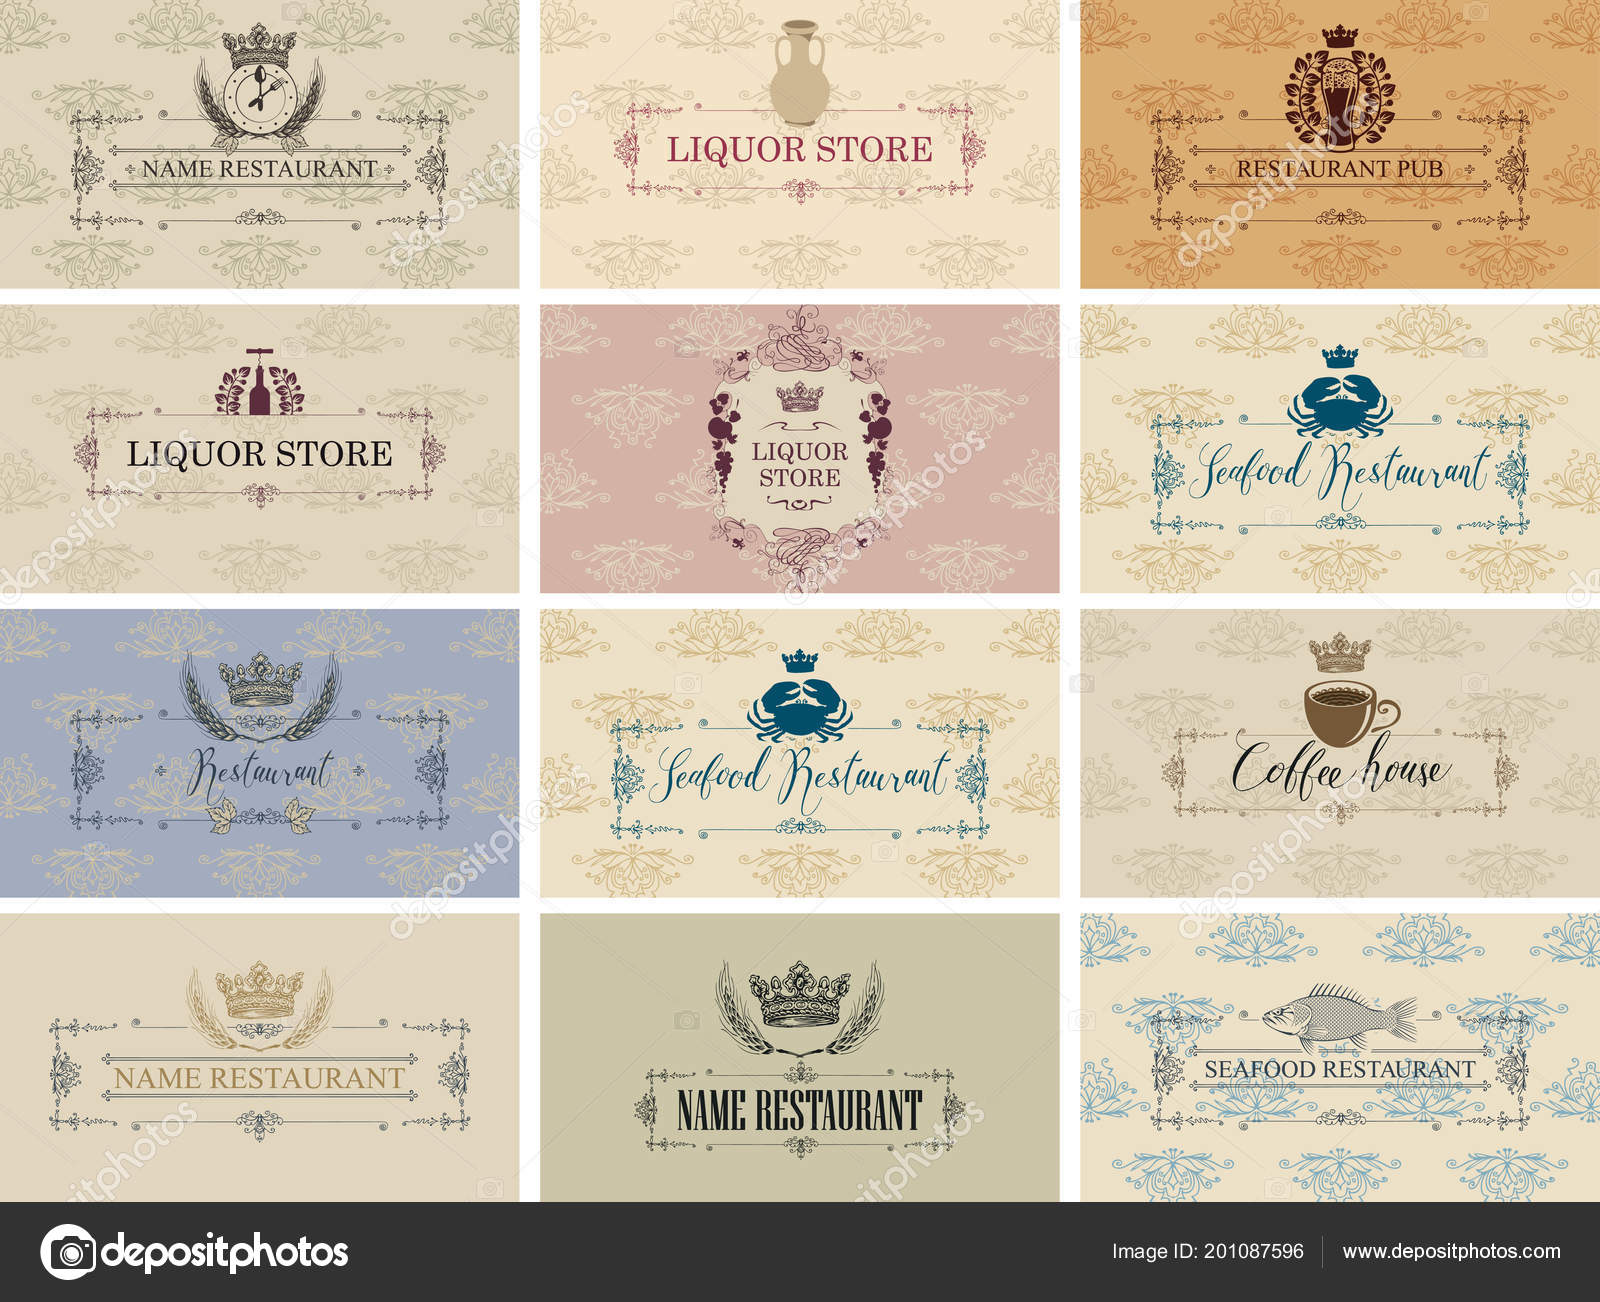 Vector set business cards theme food drink restaurant seafood vector set of business cards on the theme of food and drink for restaurant seafood restaurant coffee house liquor store and pub in baroque style on colourmoves